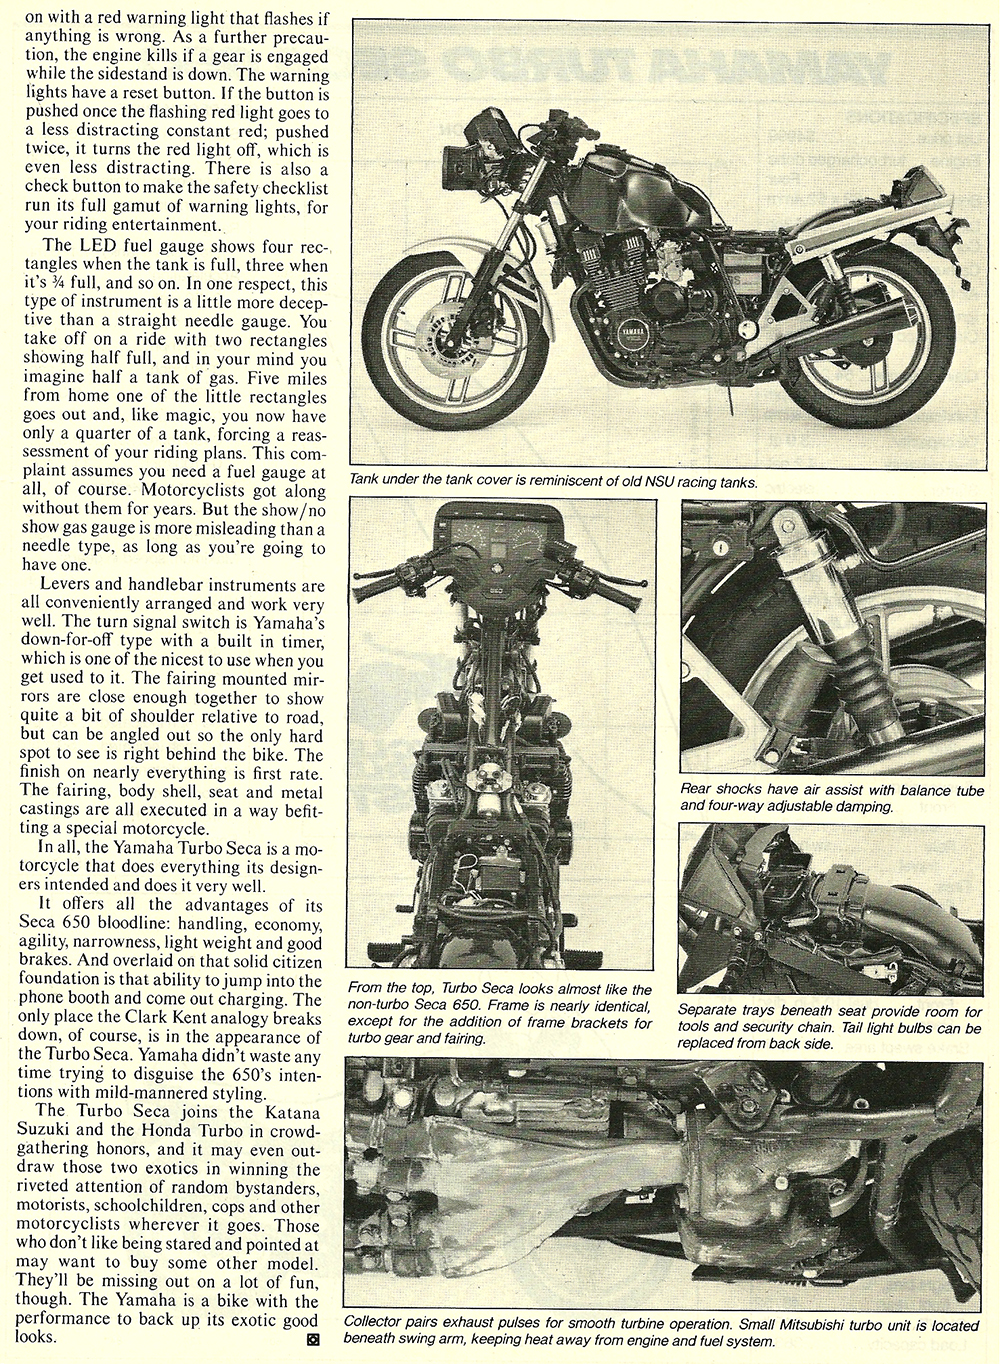 1982 Yamaha Turbo Seca 650 road test 08.jpg